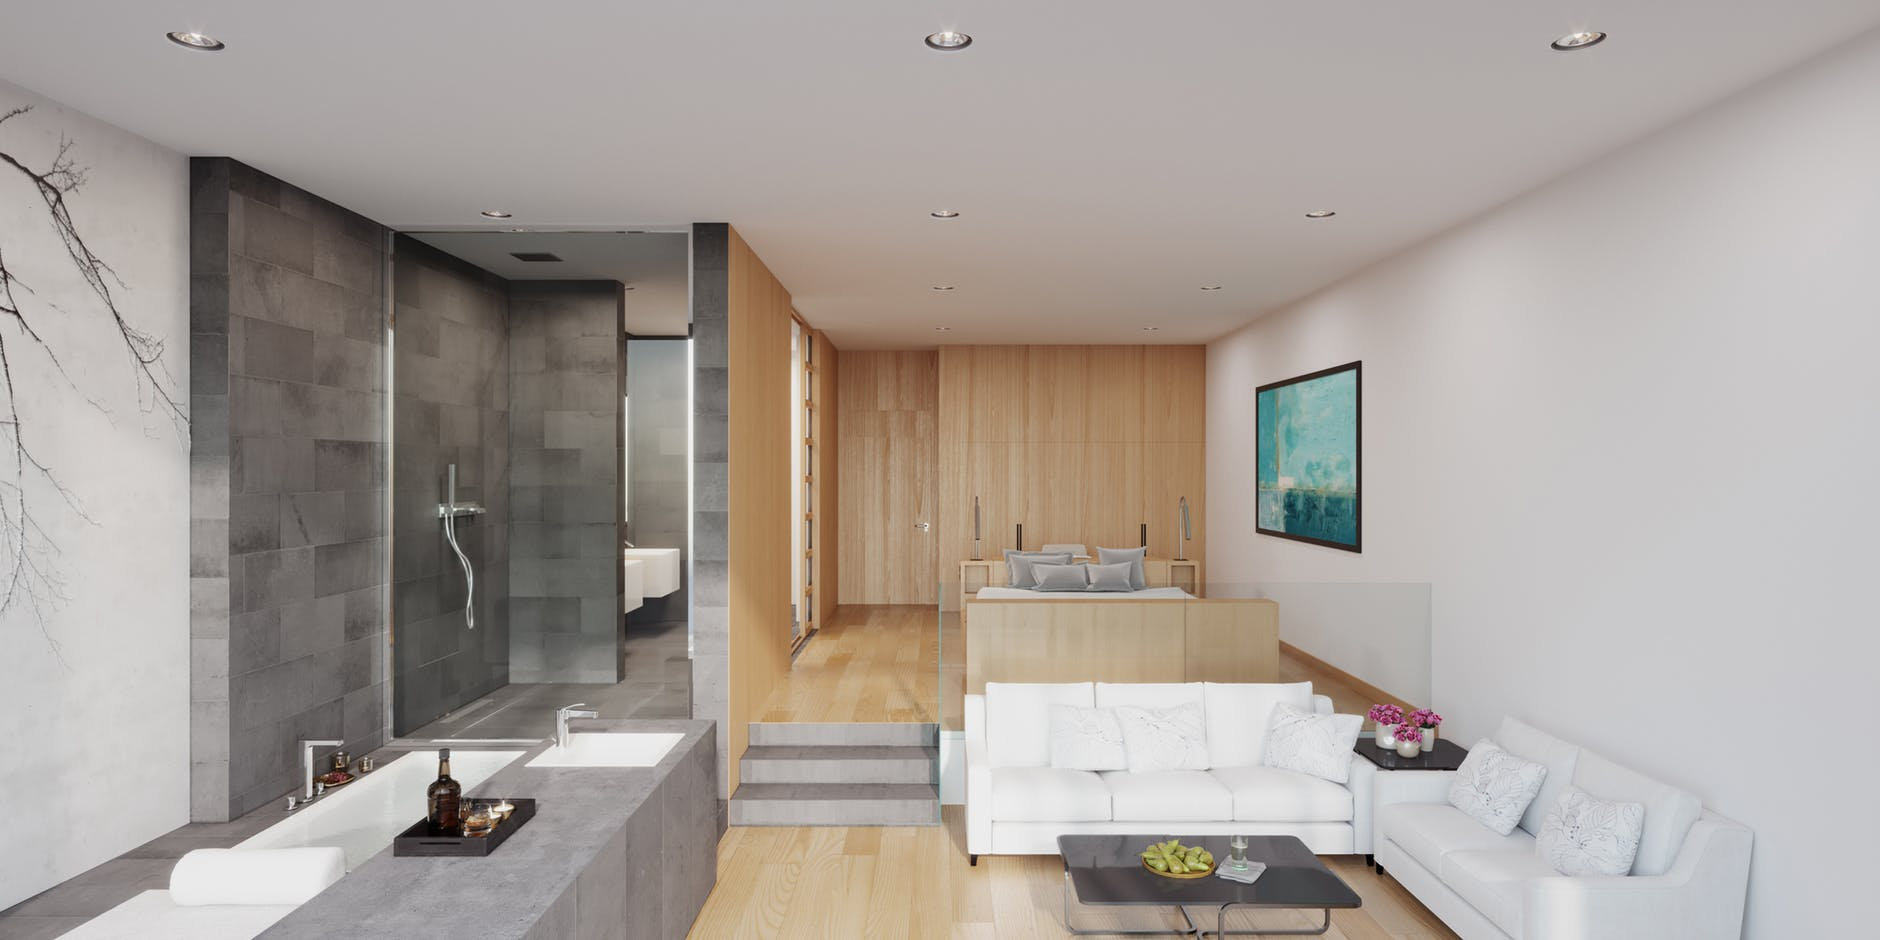 A clean and dreamy house